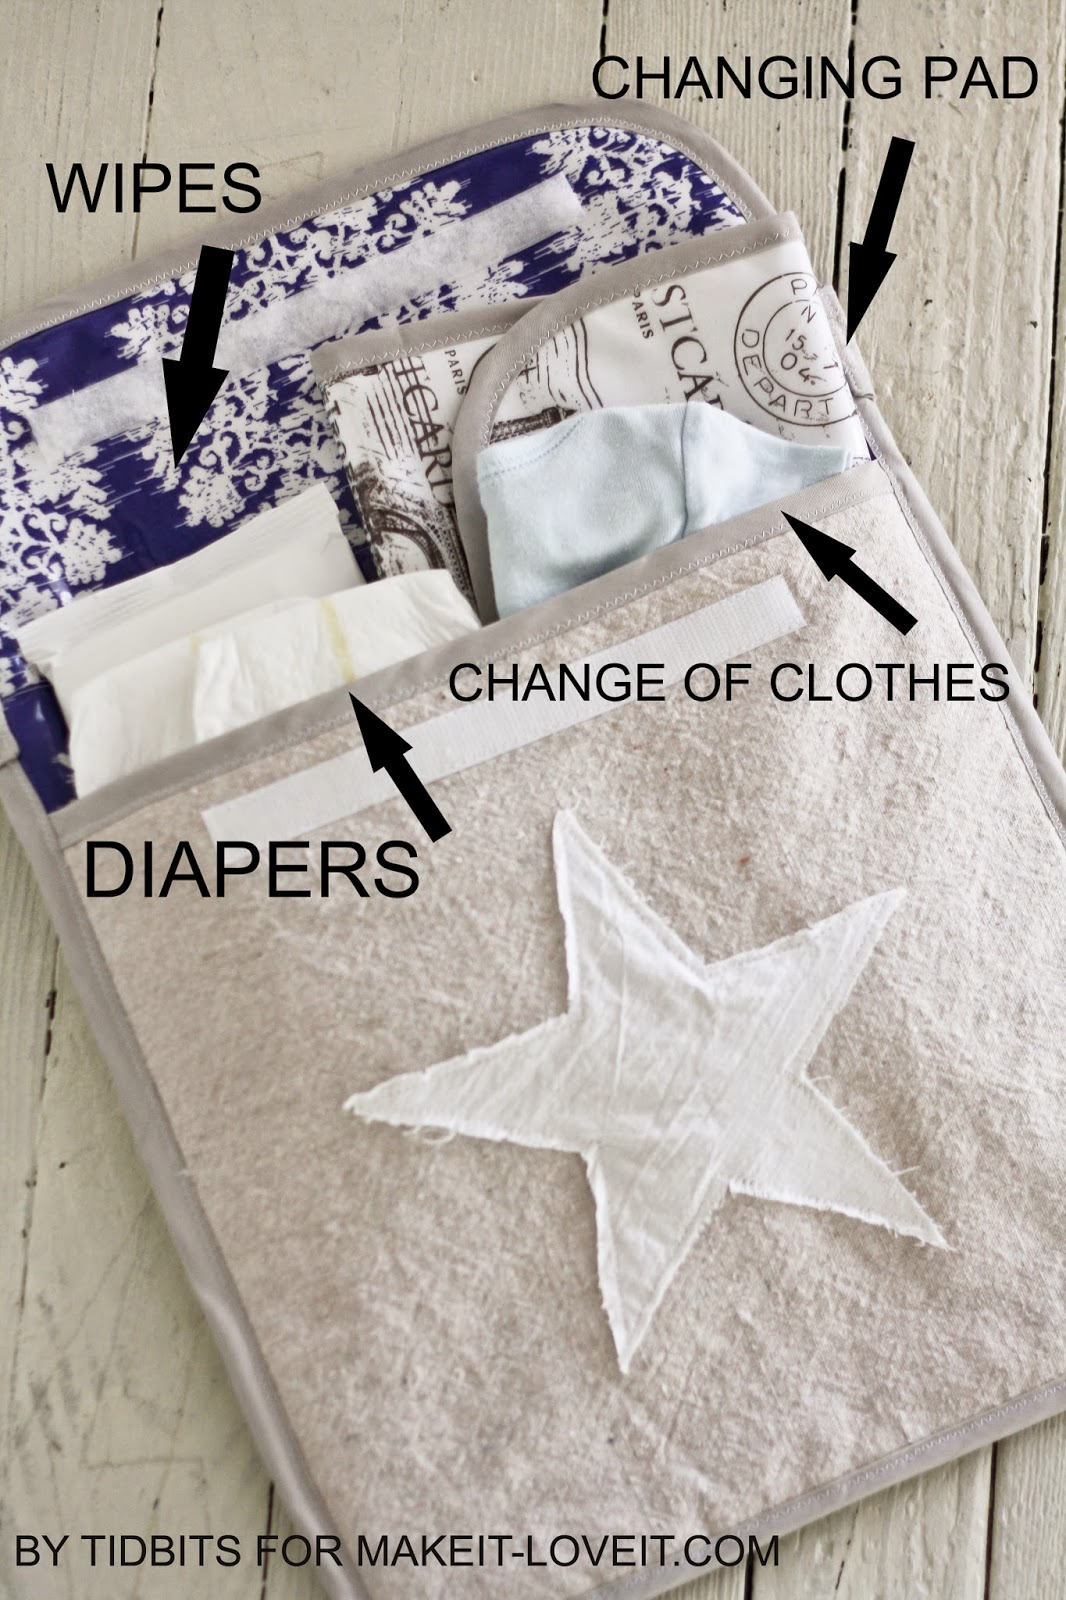 The-Double-Doodie-Bag-a-diapering-wet-bag-6